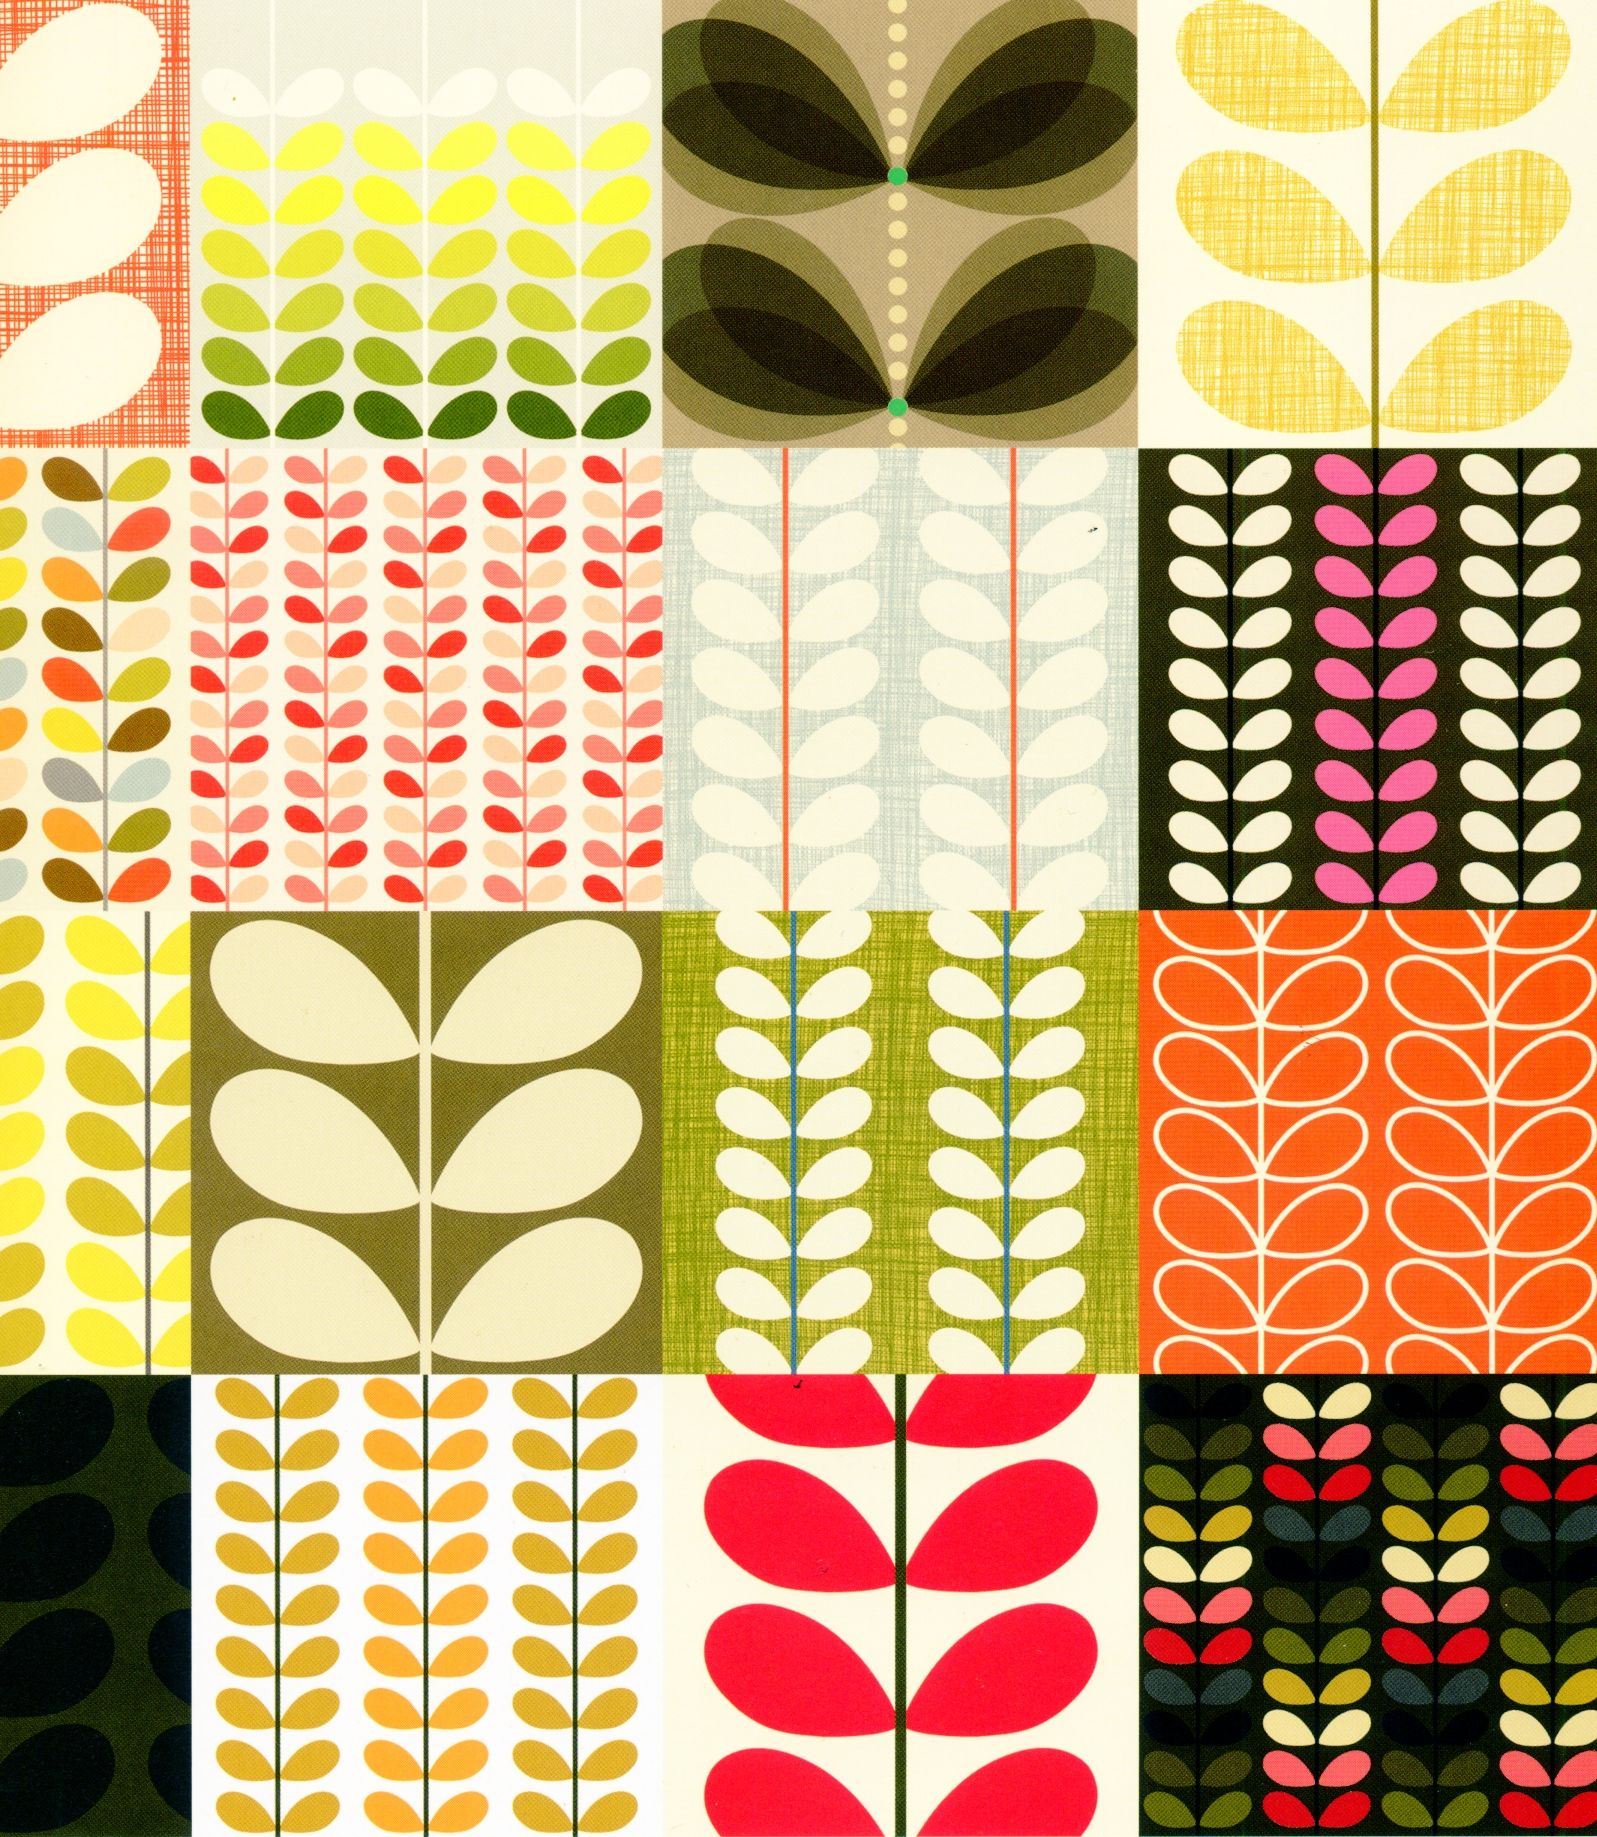 Papier Peint Orla Kiely From The Orla Kiely Book Patterns Love The Colour Choices For